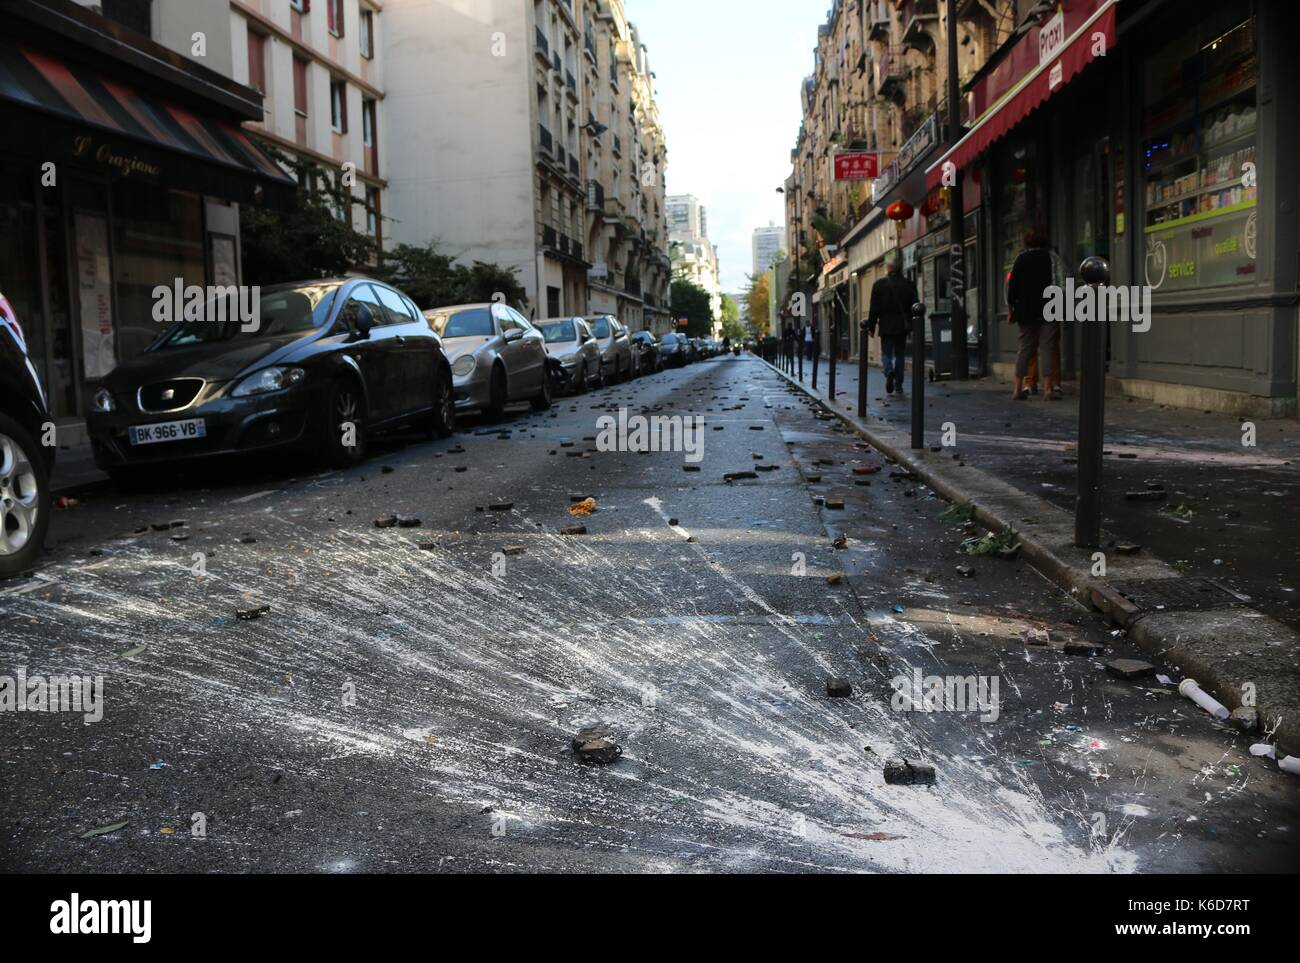 The aftermath left behind after clashes with French police during a Loi Travail march in Paris - Stock Image